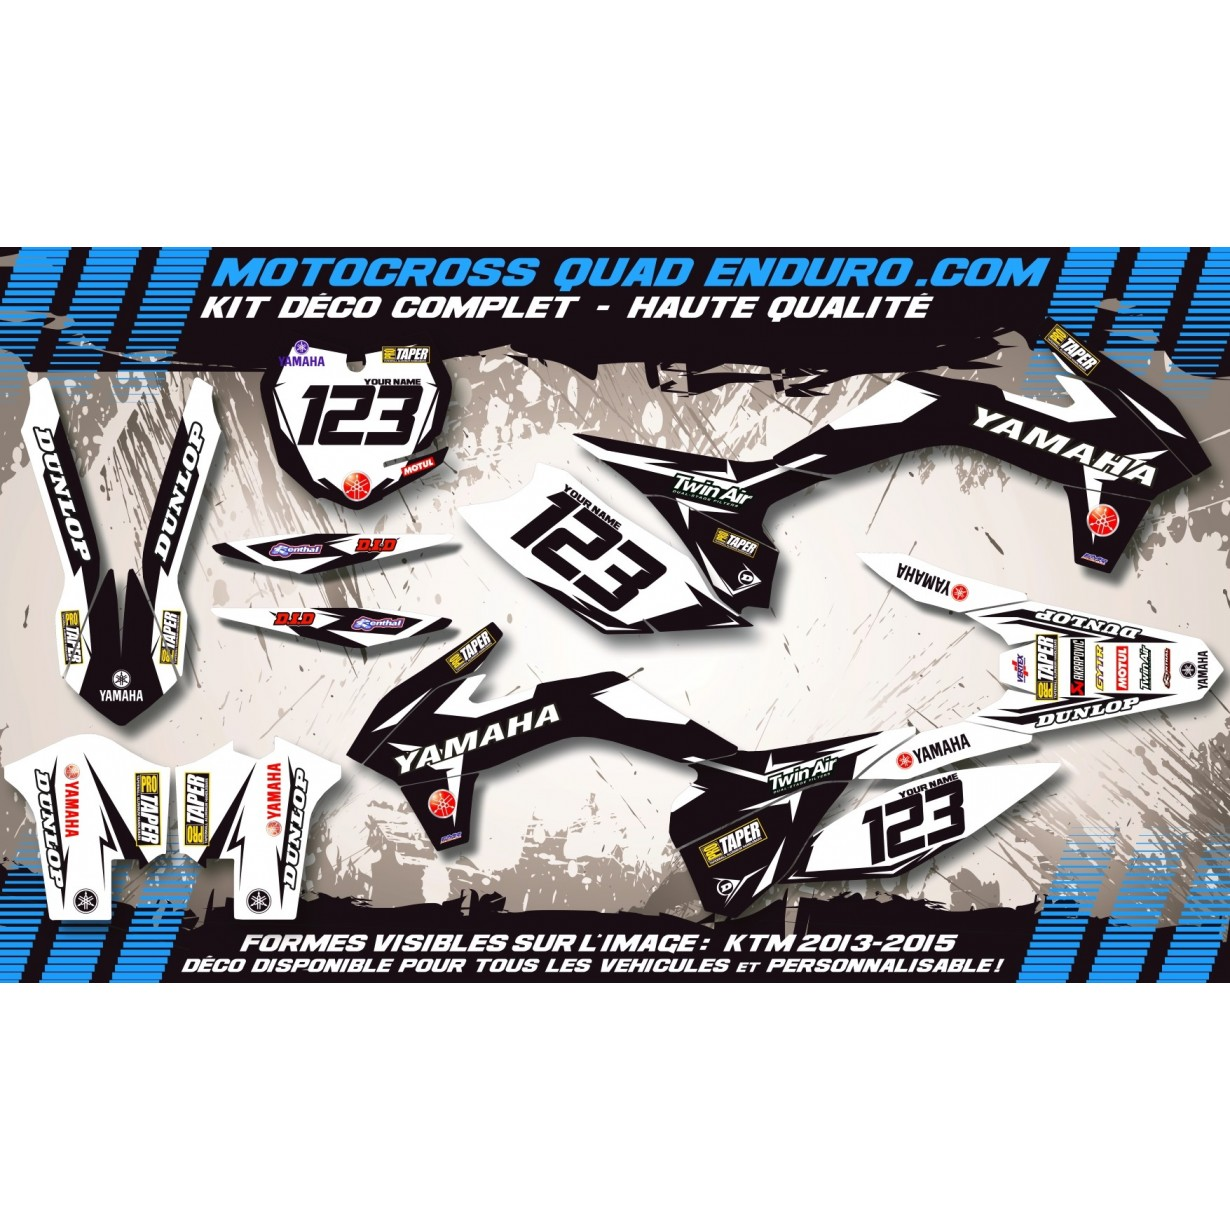 KIT DÉCO Perso 125-250 YZ UFO LOOK 4T 02-14 Factory Black Edition MA10EB